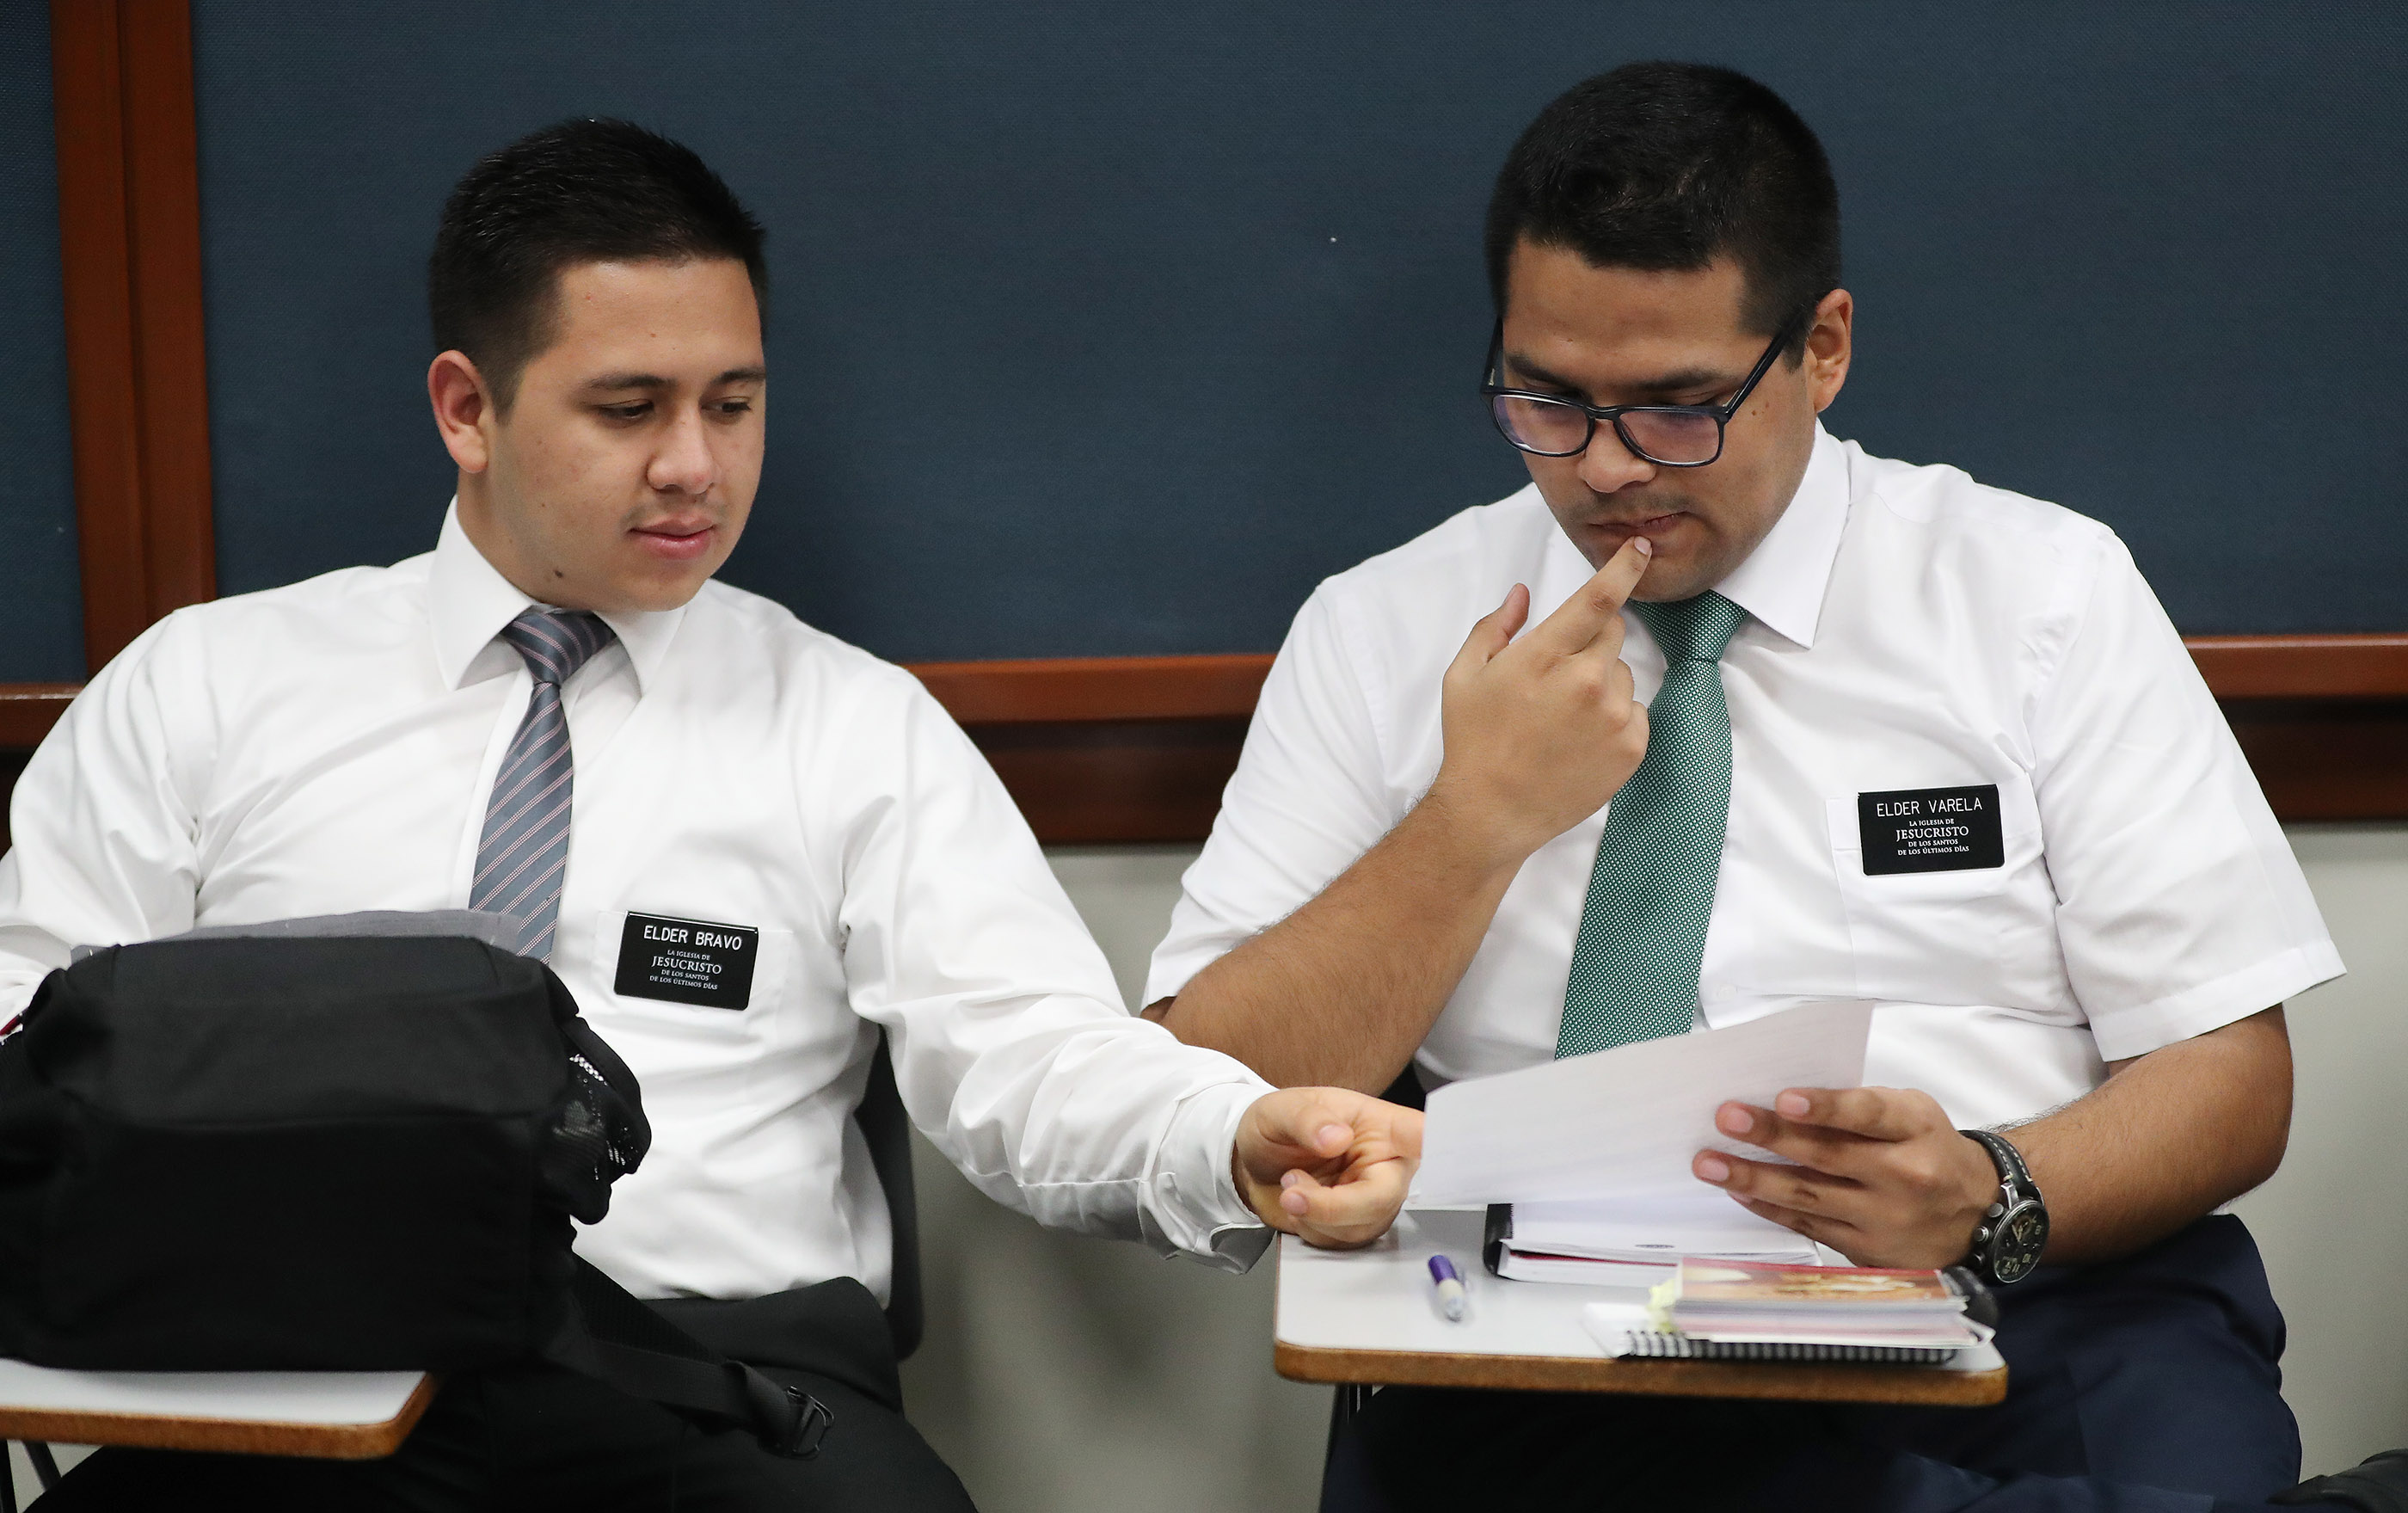 Elders Jamie Bravo and Julio Varela study at the Peru Missionary Training Center in Lima, Peru on Friday, Oct. 19, 2018.